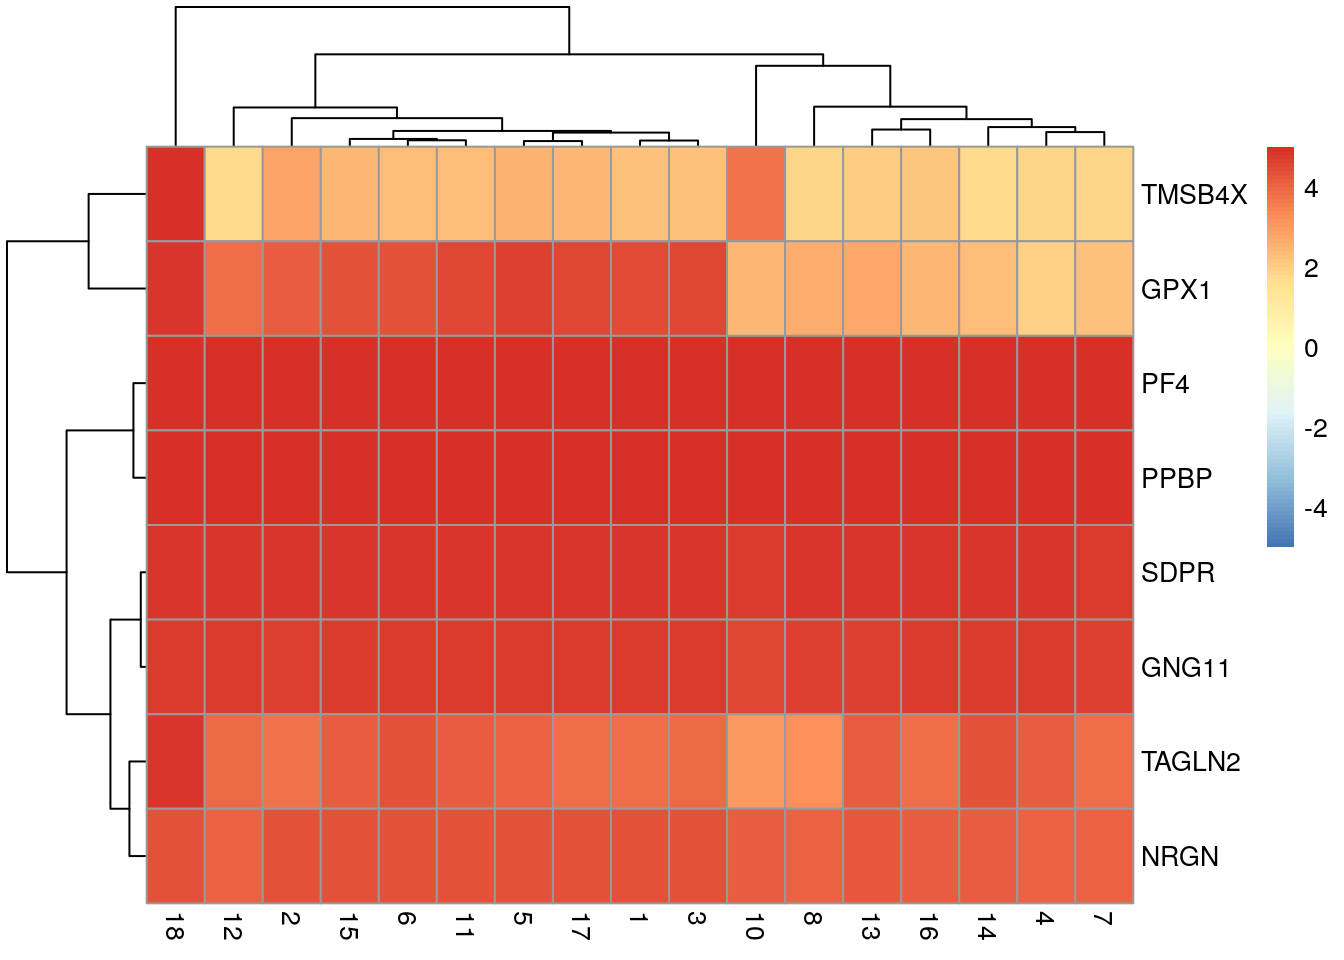 Heatmap of log-fold changes for cluster 9 over all other clusters. Colours are capped at -5 and 5 to preserve dynamic range.